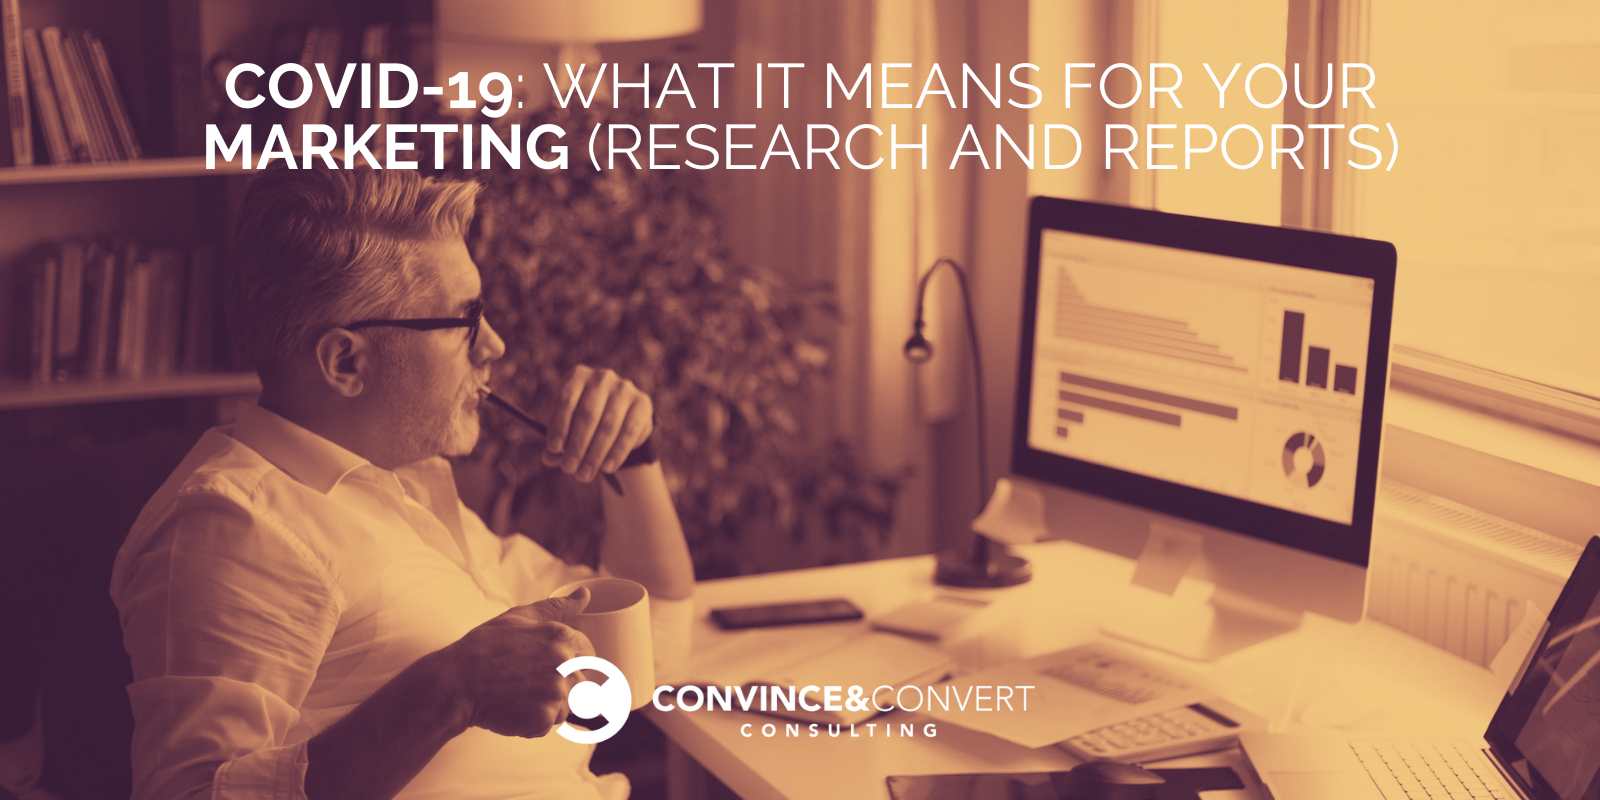 covid-19 marketing research and reports